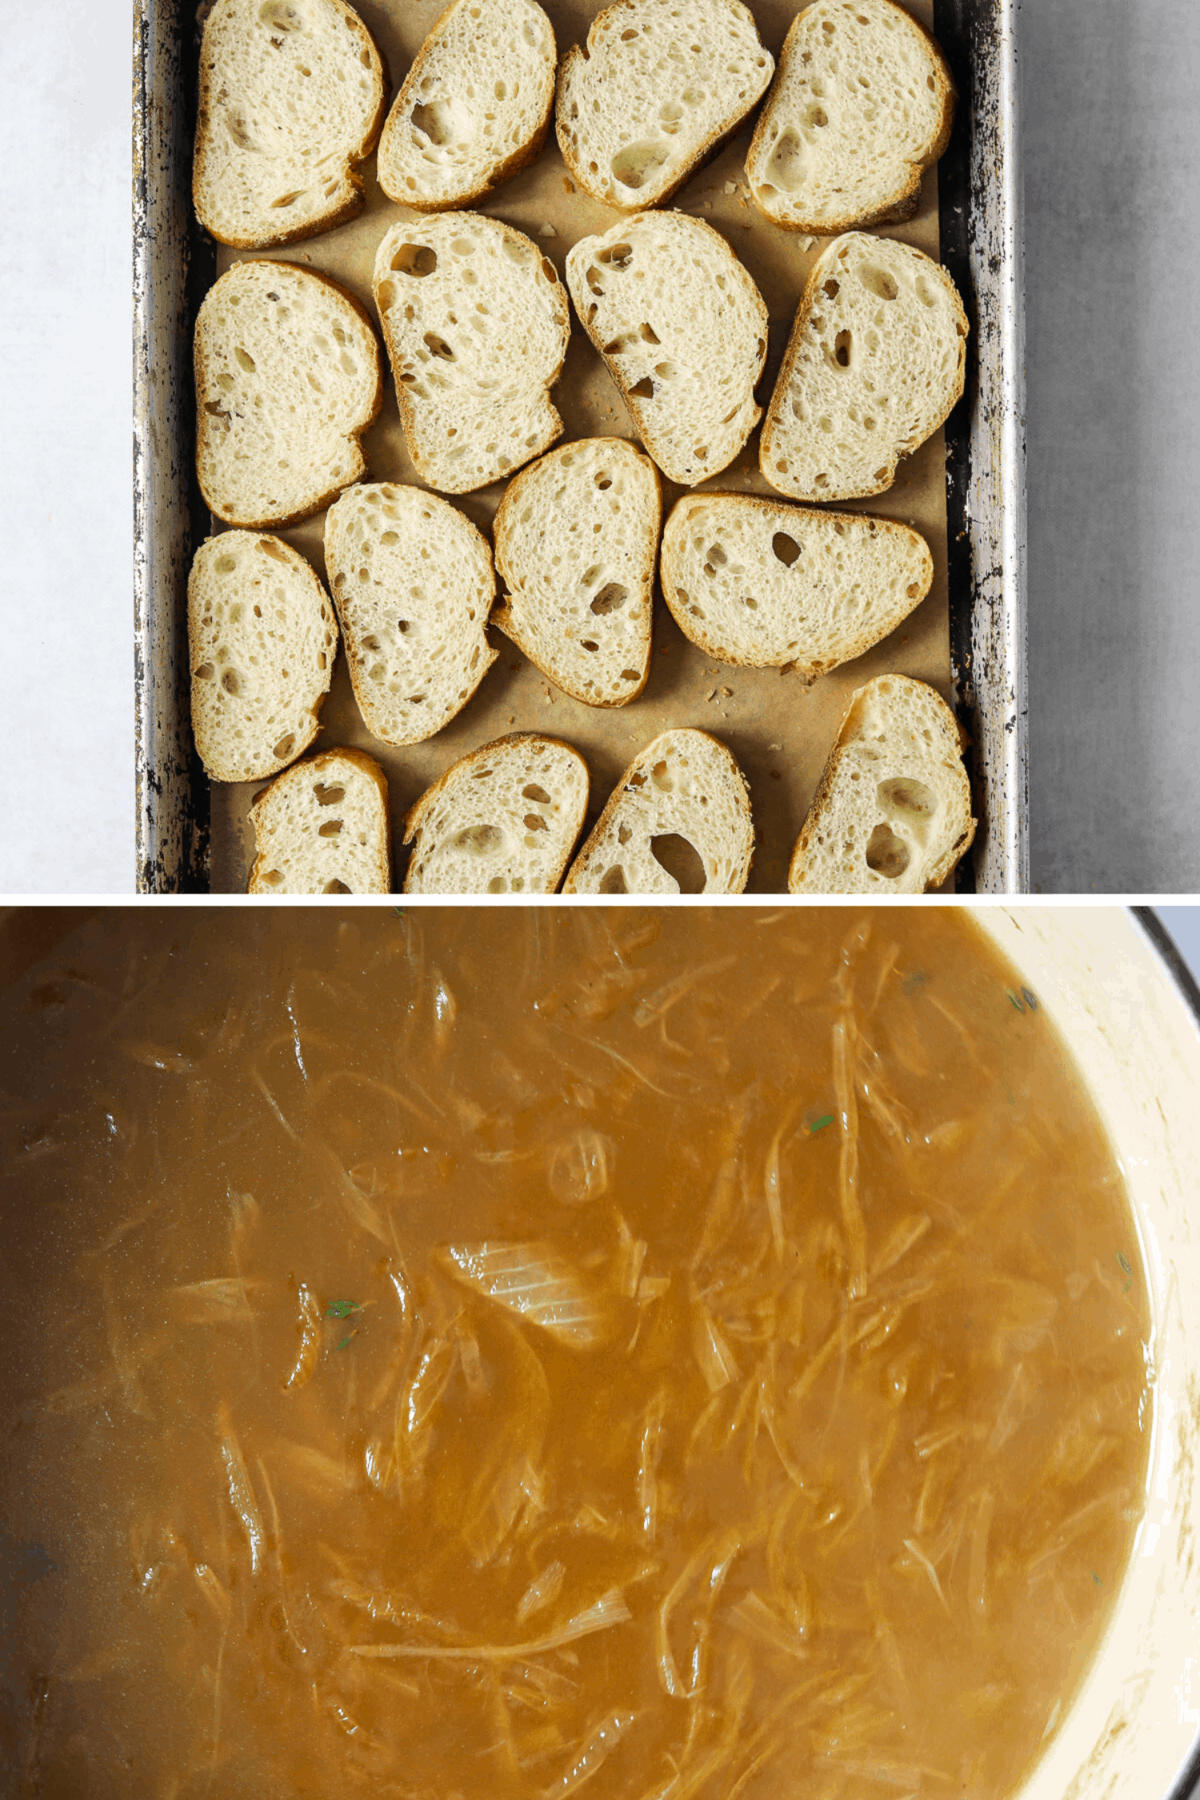 sliced baguette lined up on a baking tray and french onion soup in a cast iron pot